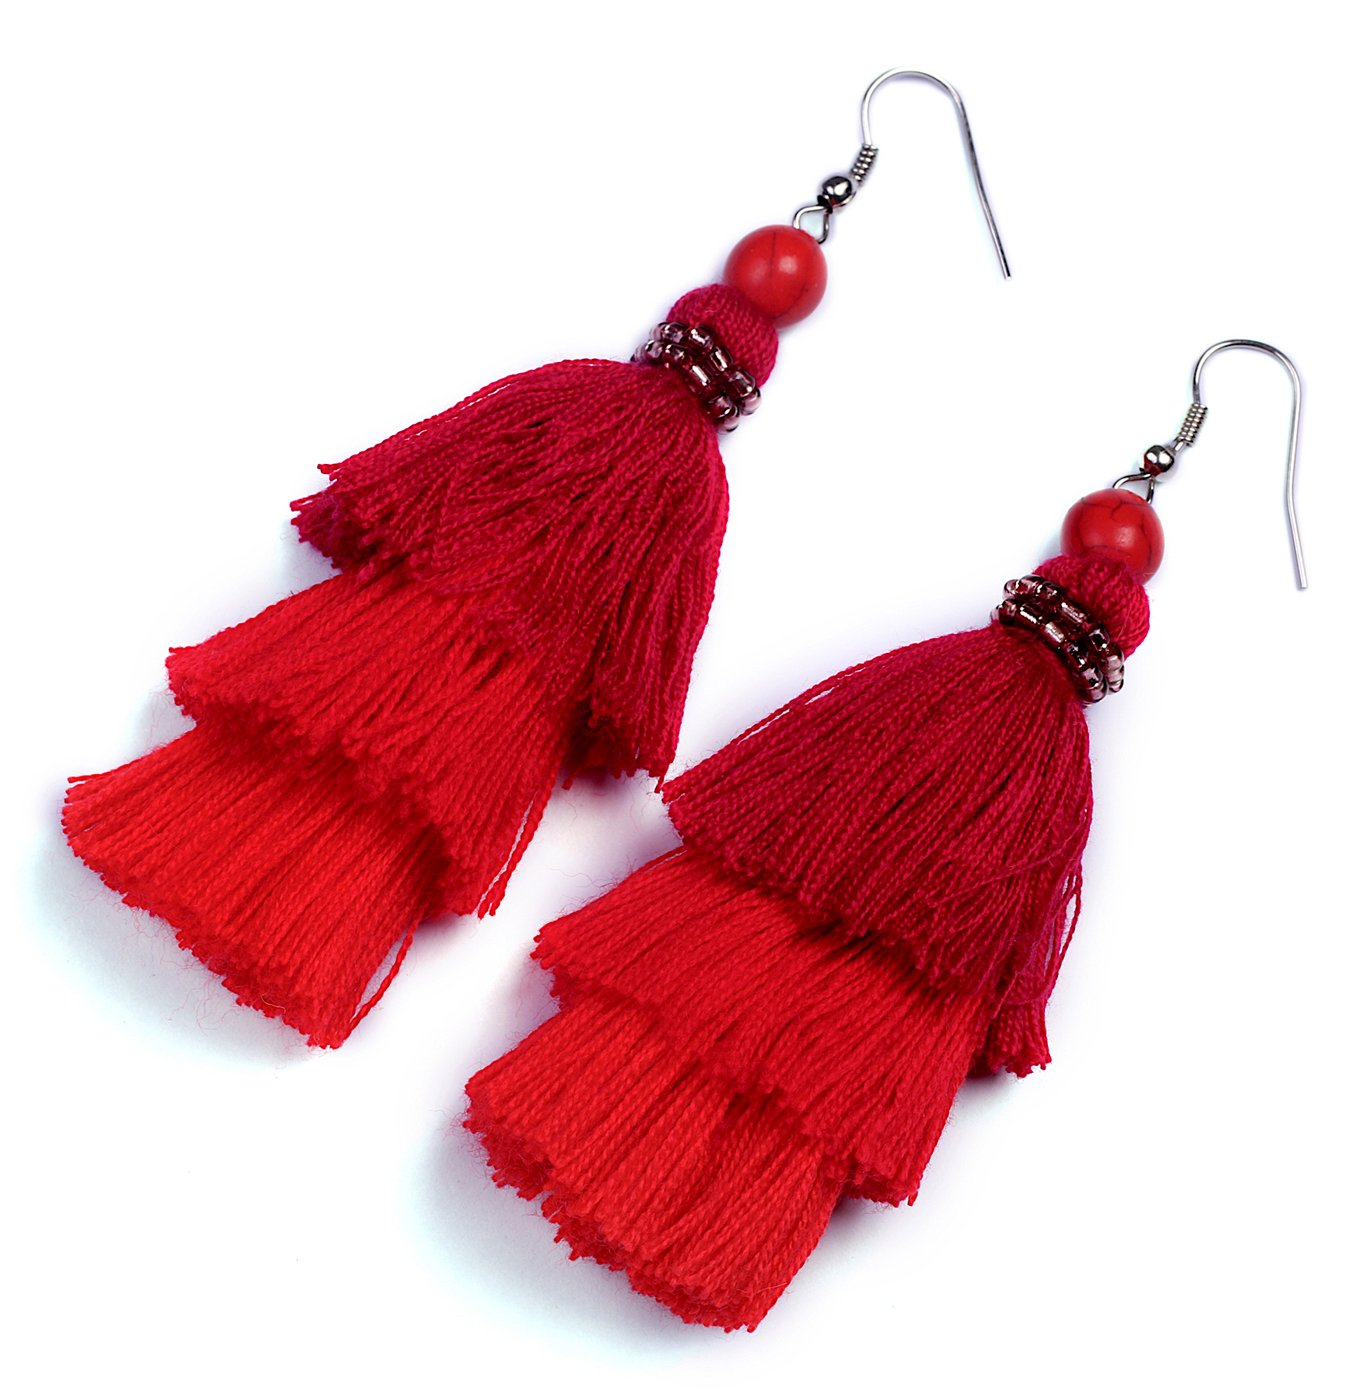 AKITAI Bohemian Jewelry Unique Ideas Red Layered Tassel Earrings Boho Ethnic Handmade Gypsy Style